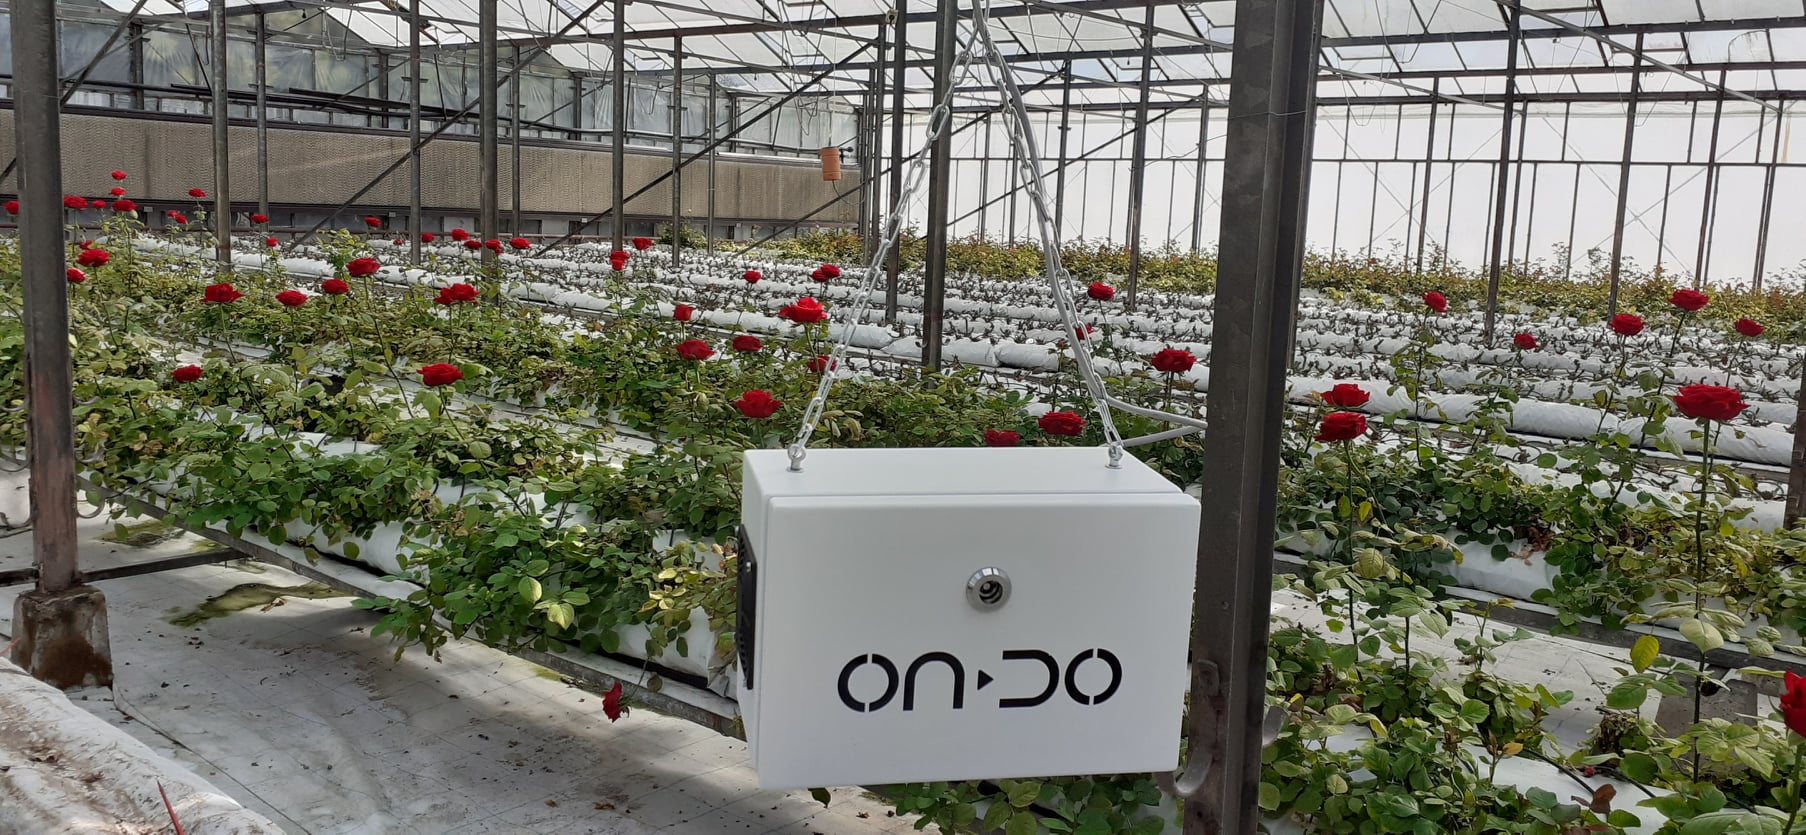 ONDO Smart Farming Solutions shares first customer results in a case study for Roseland customer